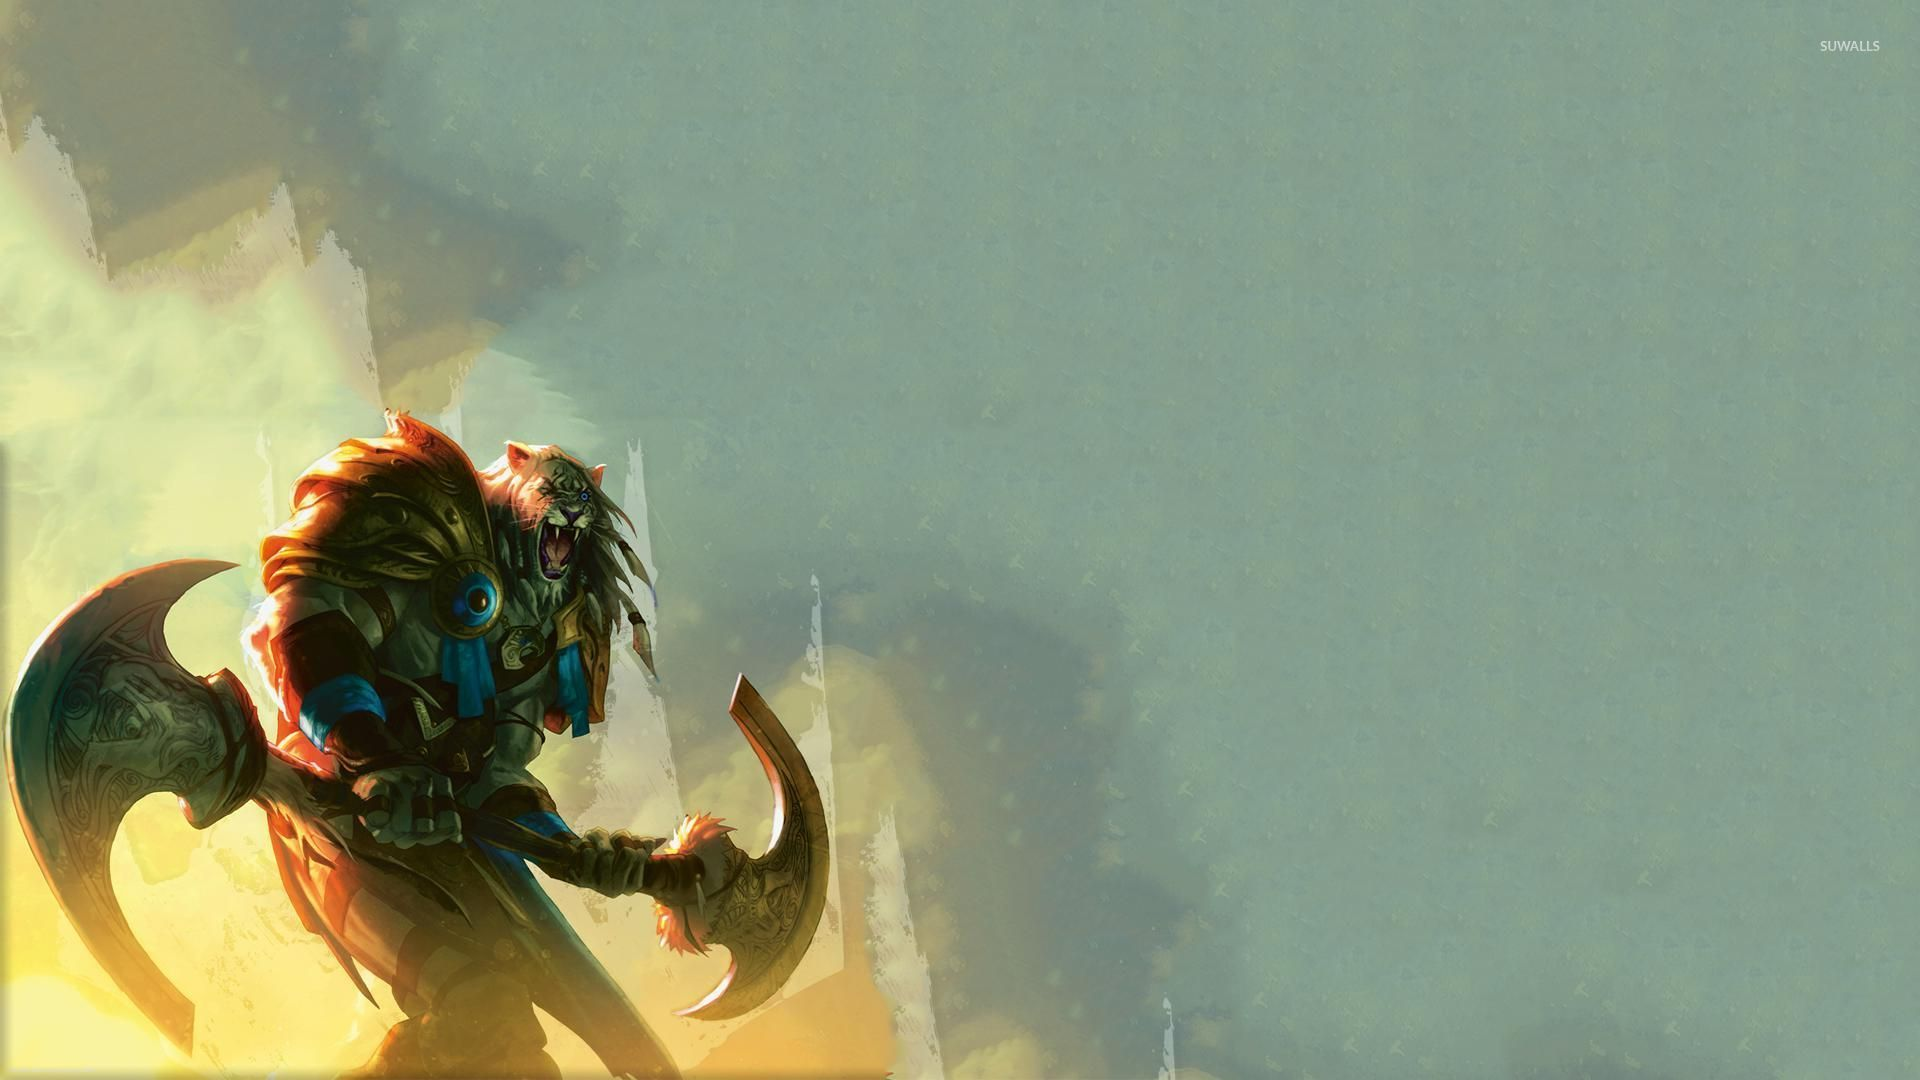 ajani wallpaper - photo #33